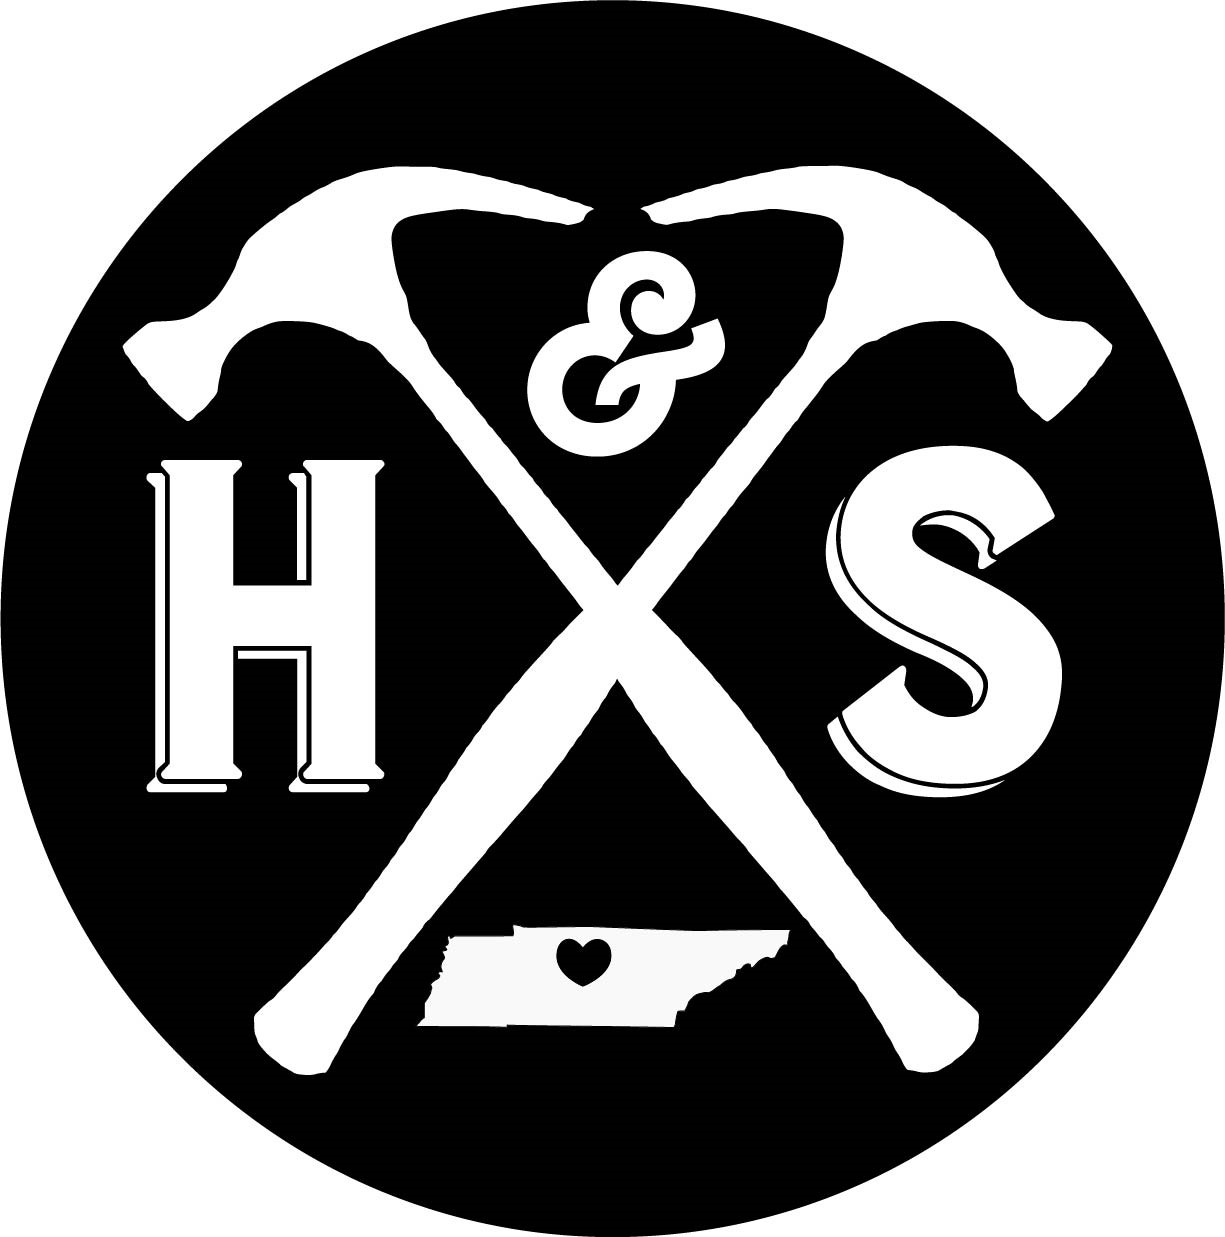 Hammer and Stain logo